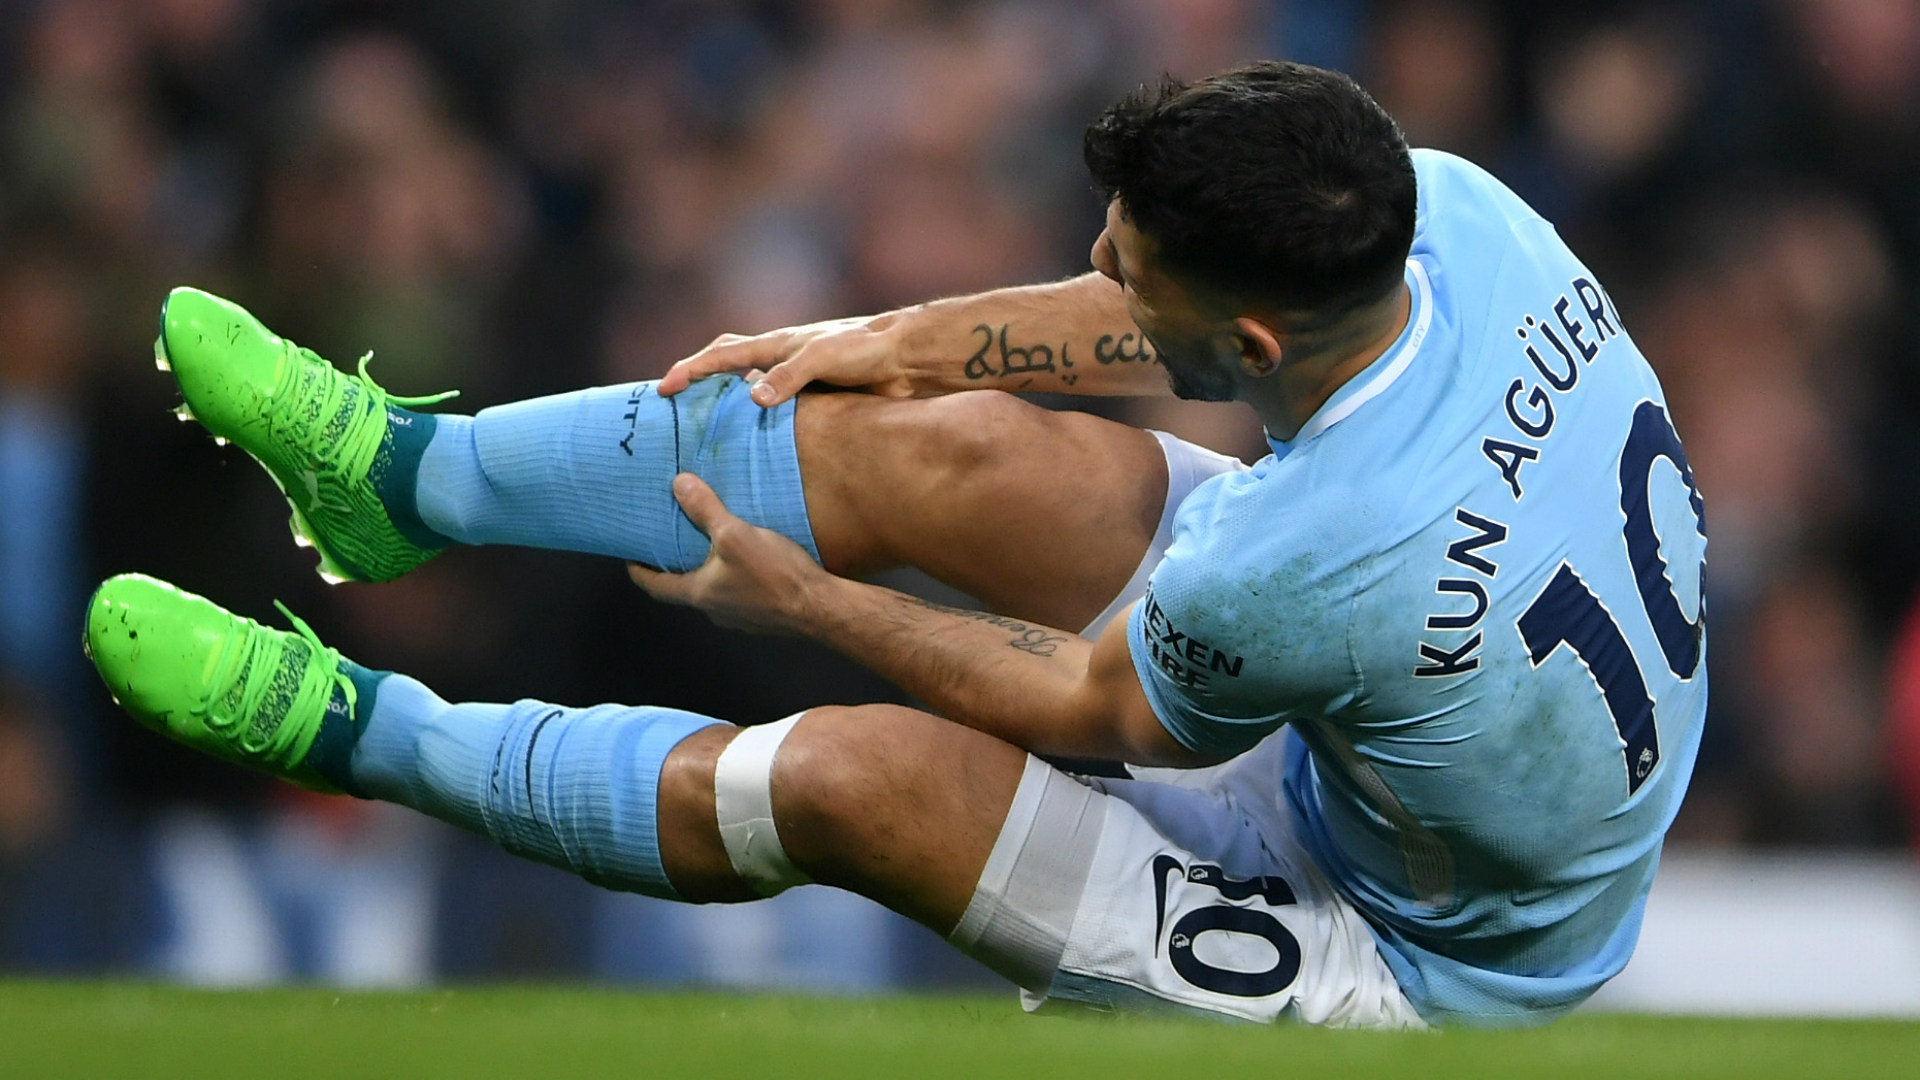 Man City ace Aguero happy to wrap up title early